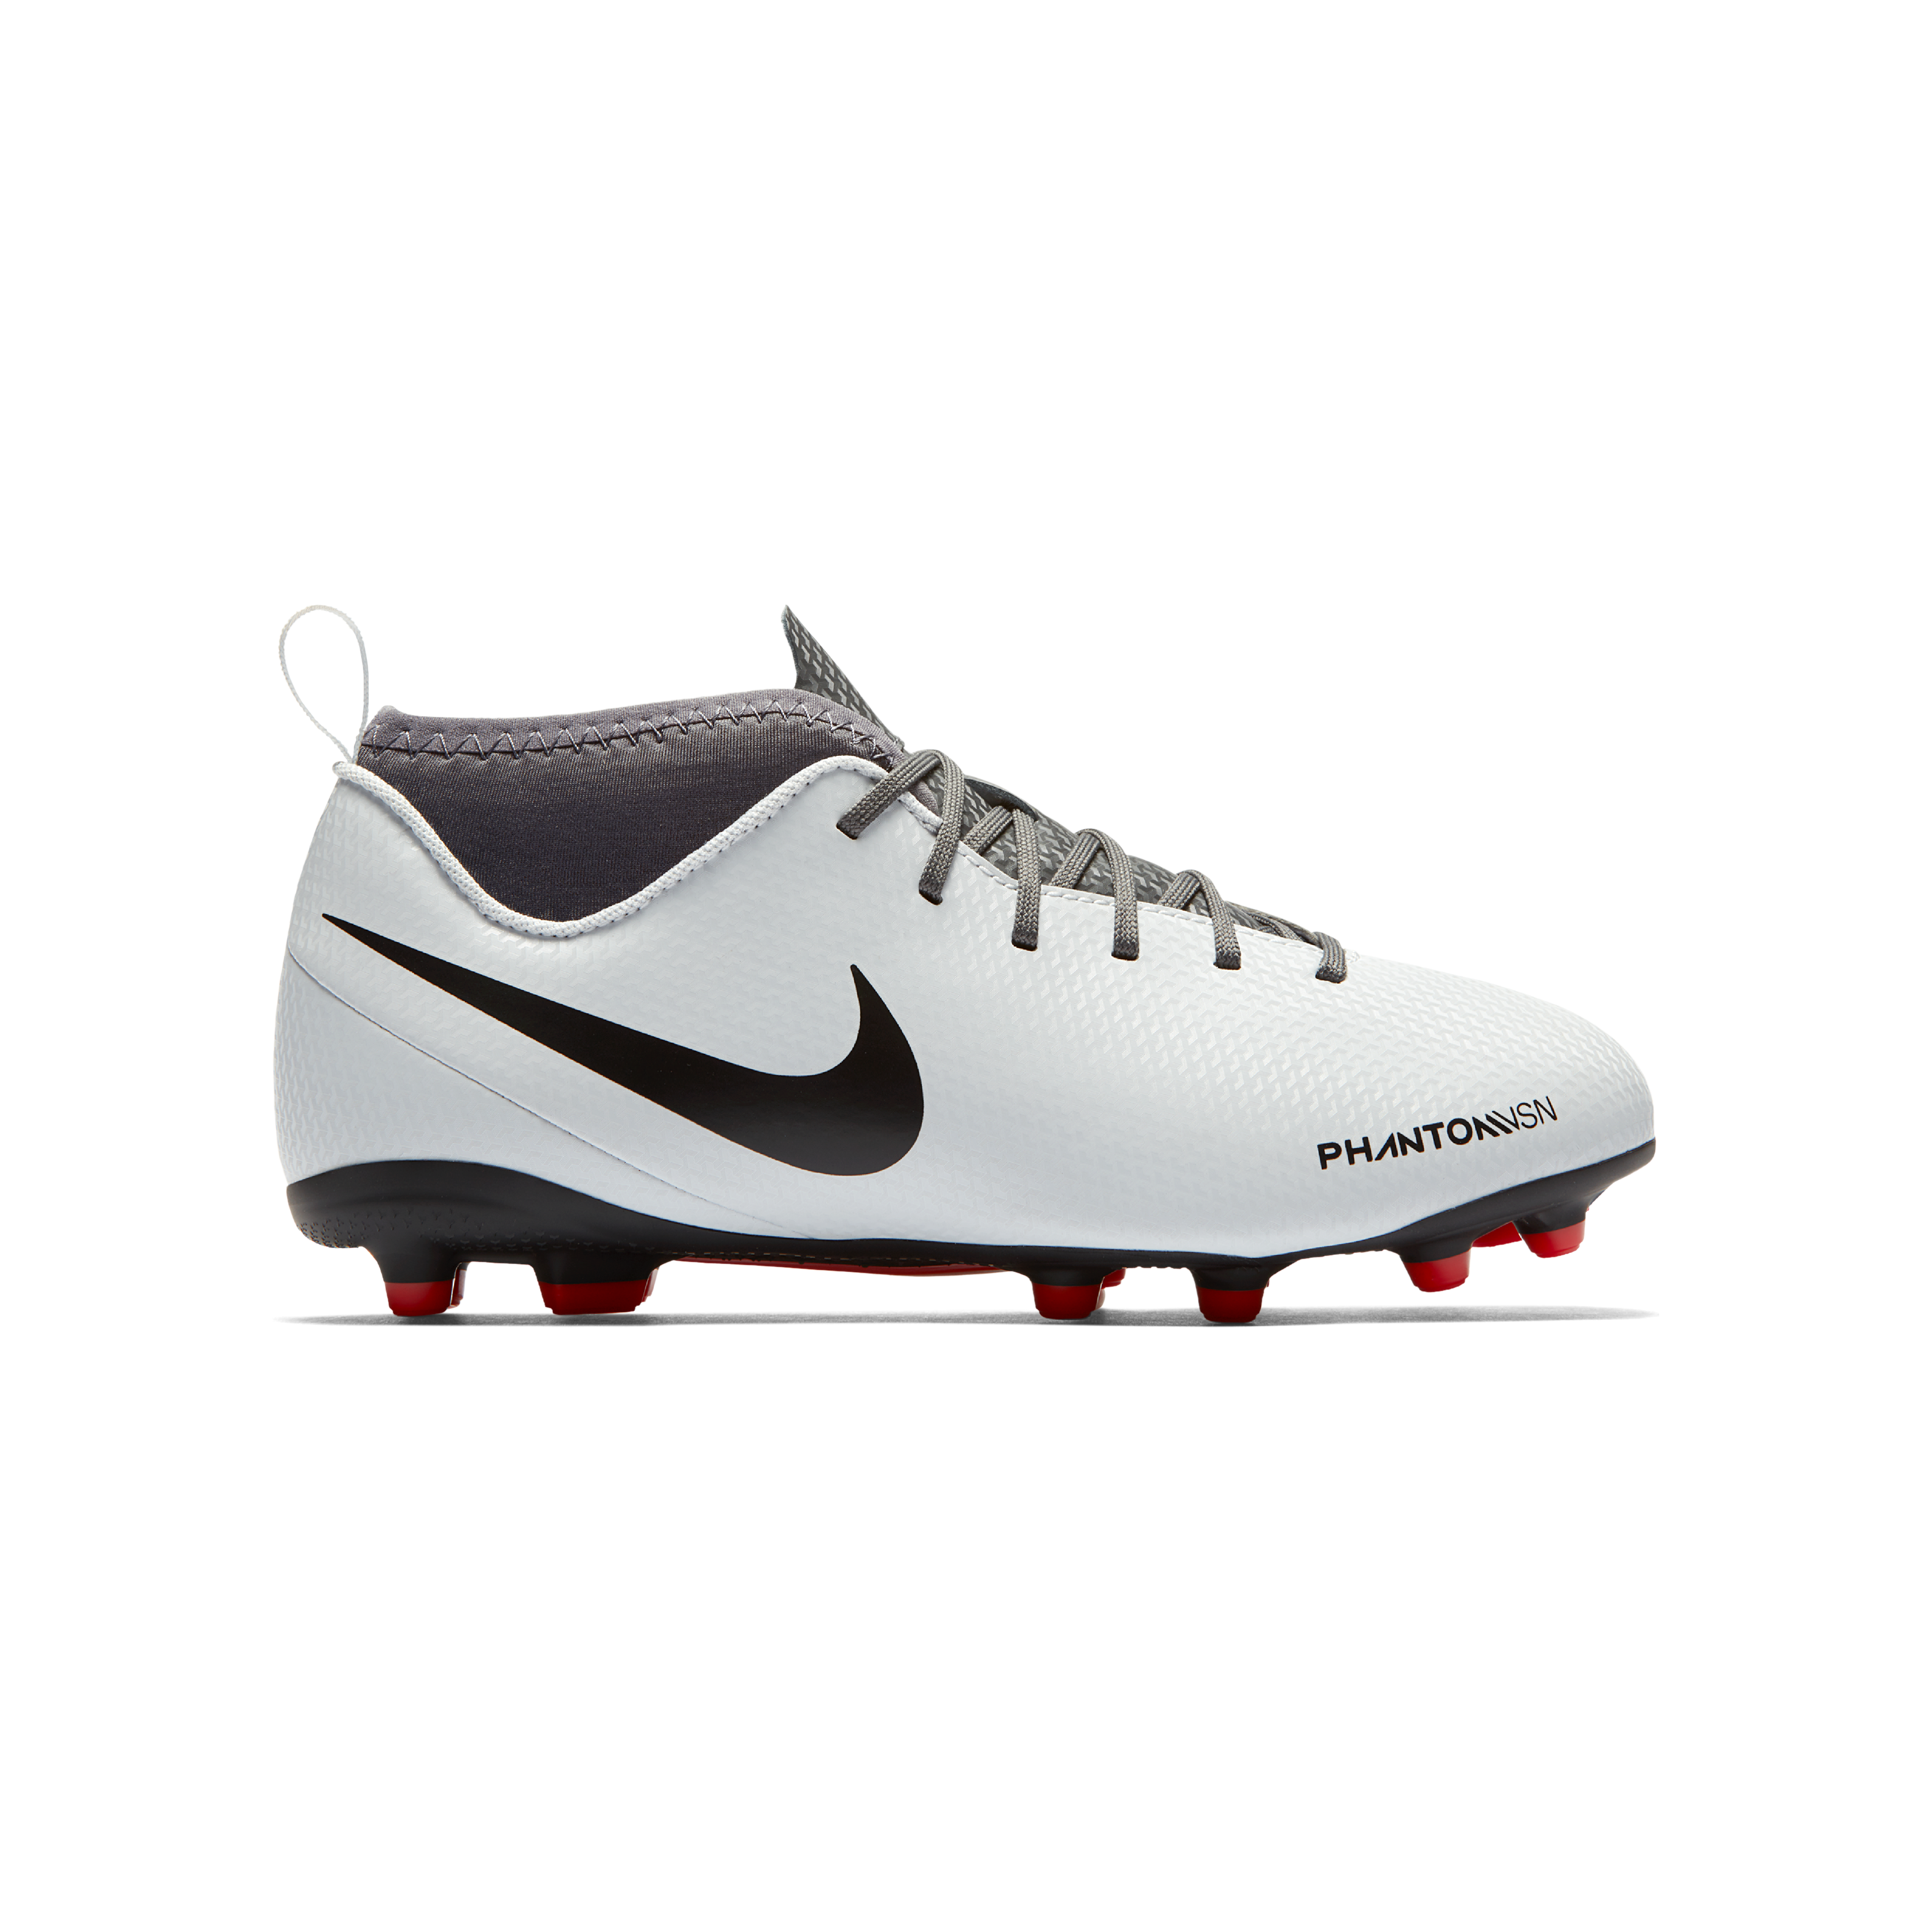 NIKE OBRA 3 CLUB DF MG JUNIOR - Poobie Naidoos e359773a6de